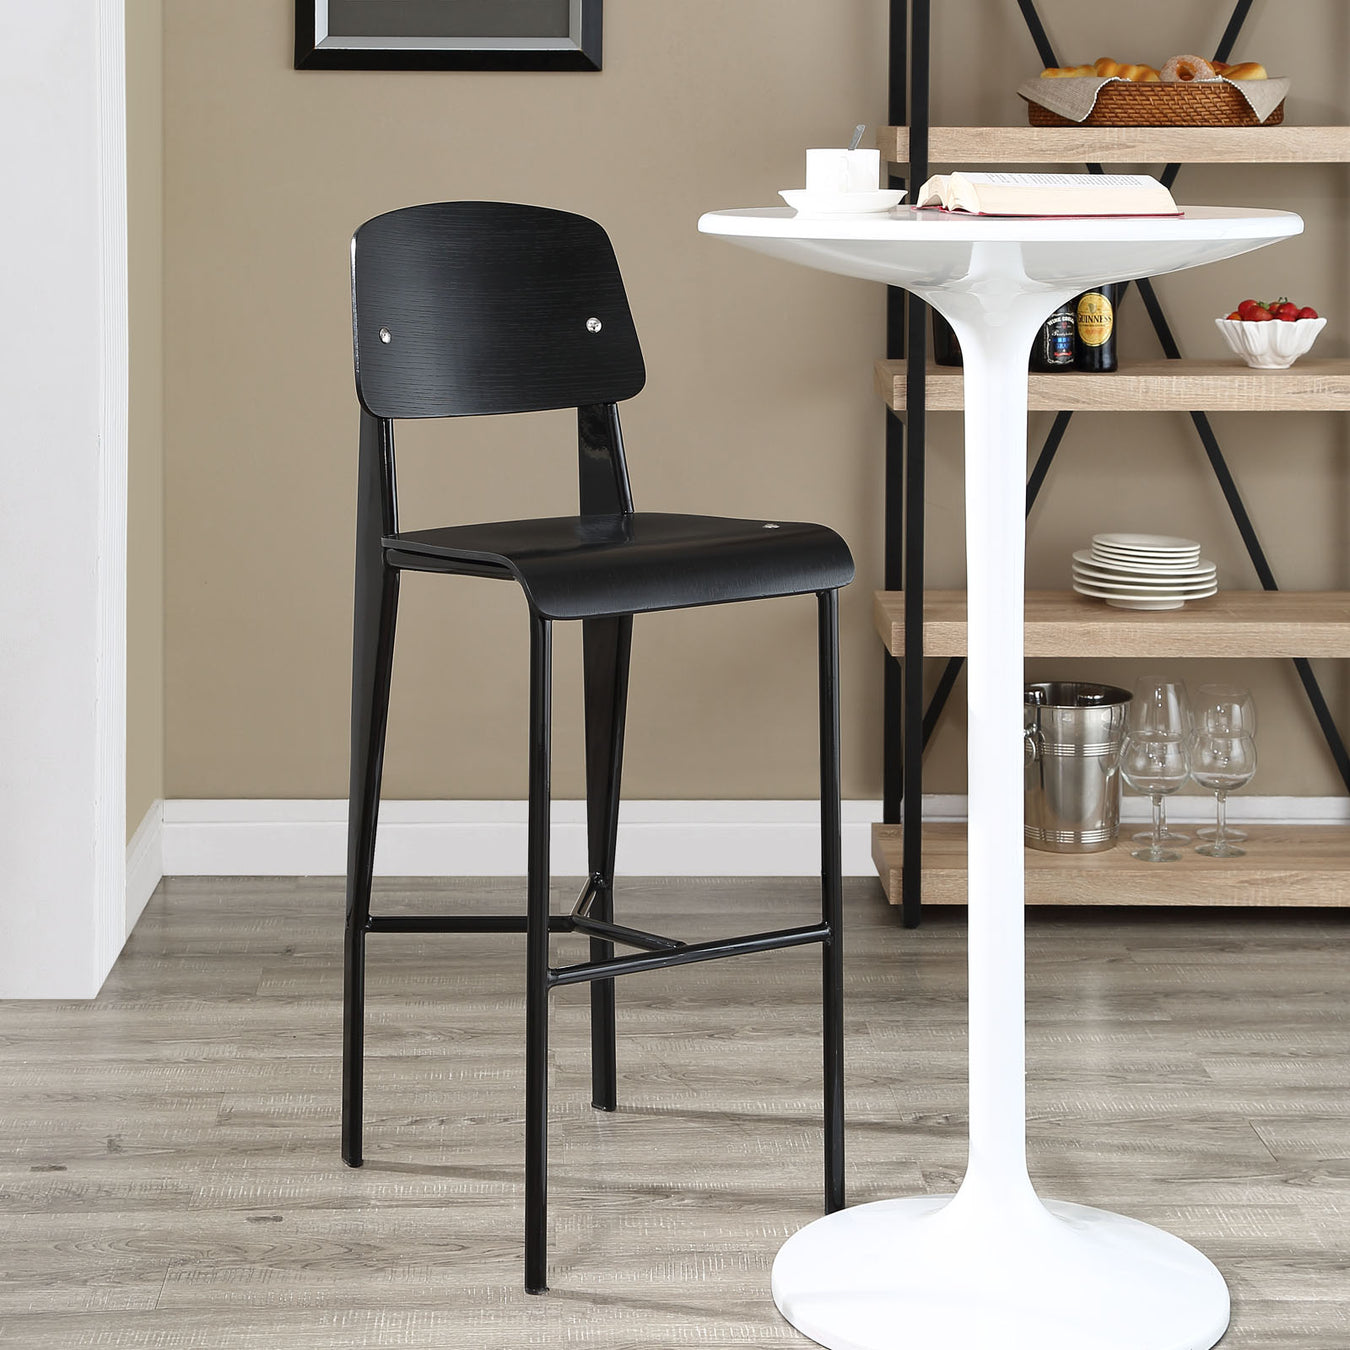 Black Prouve Bar Stool & White Saarinen Style Tulip Bistro Bar Table - Designdistrict